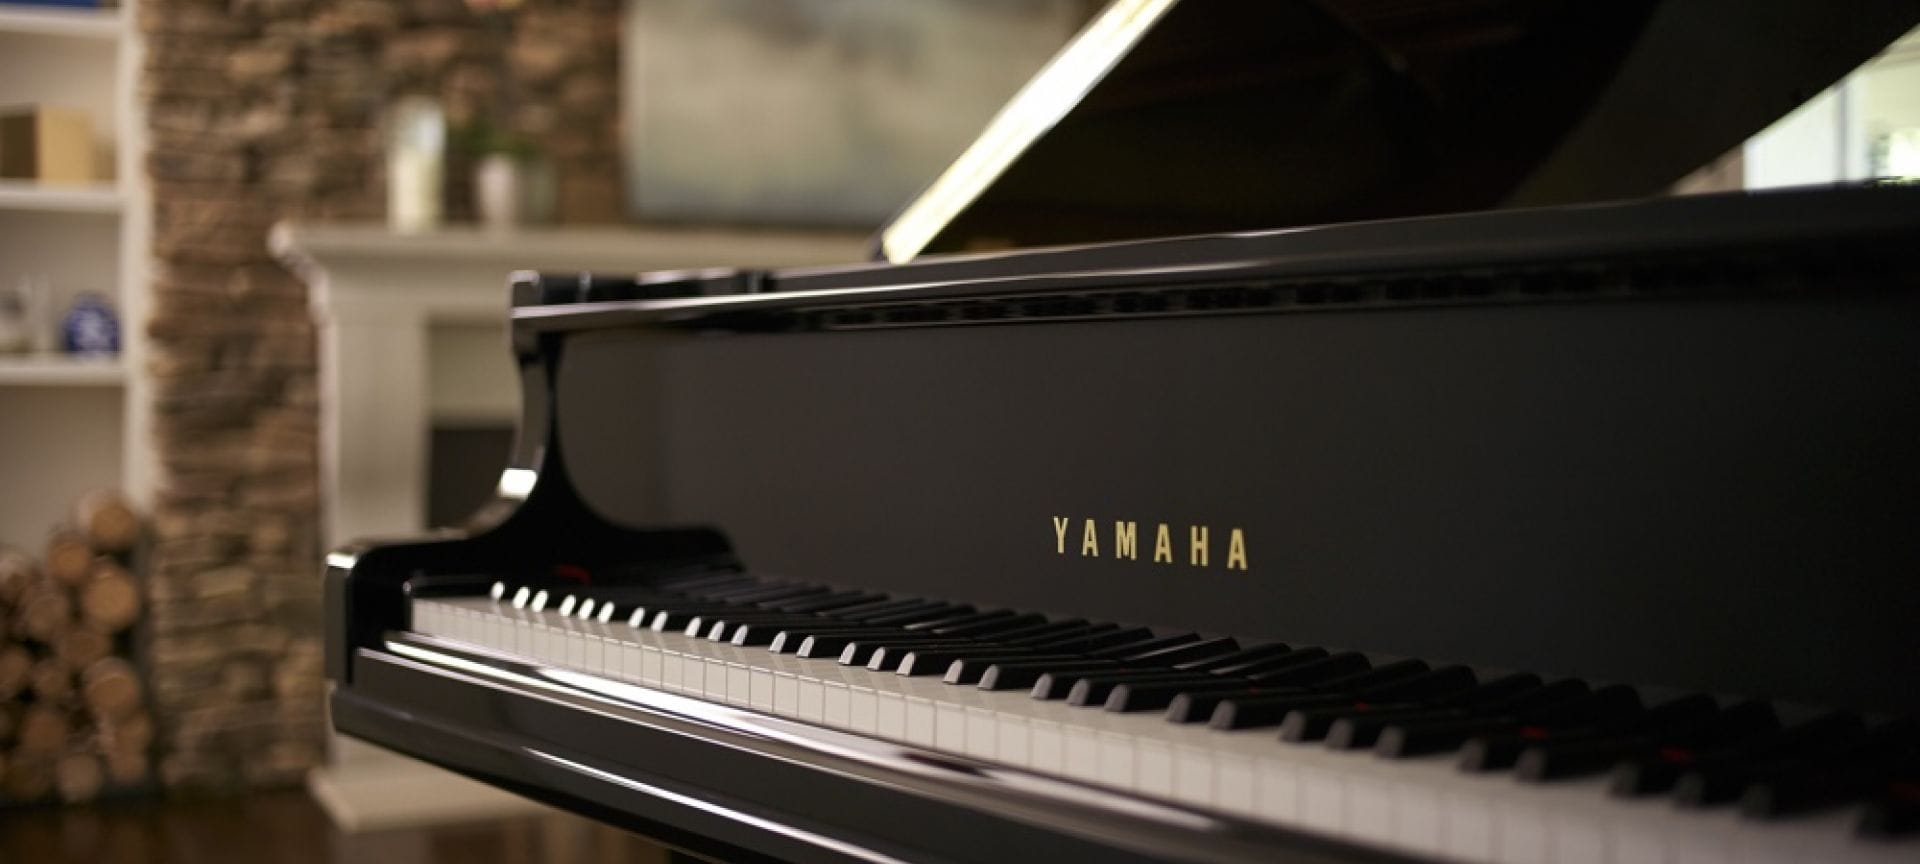 Close-up of Yamaha baby grand piano keys with lid open and fireplace in background.